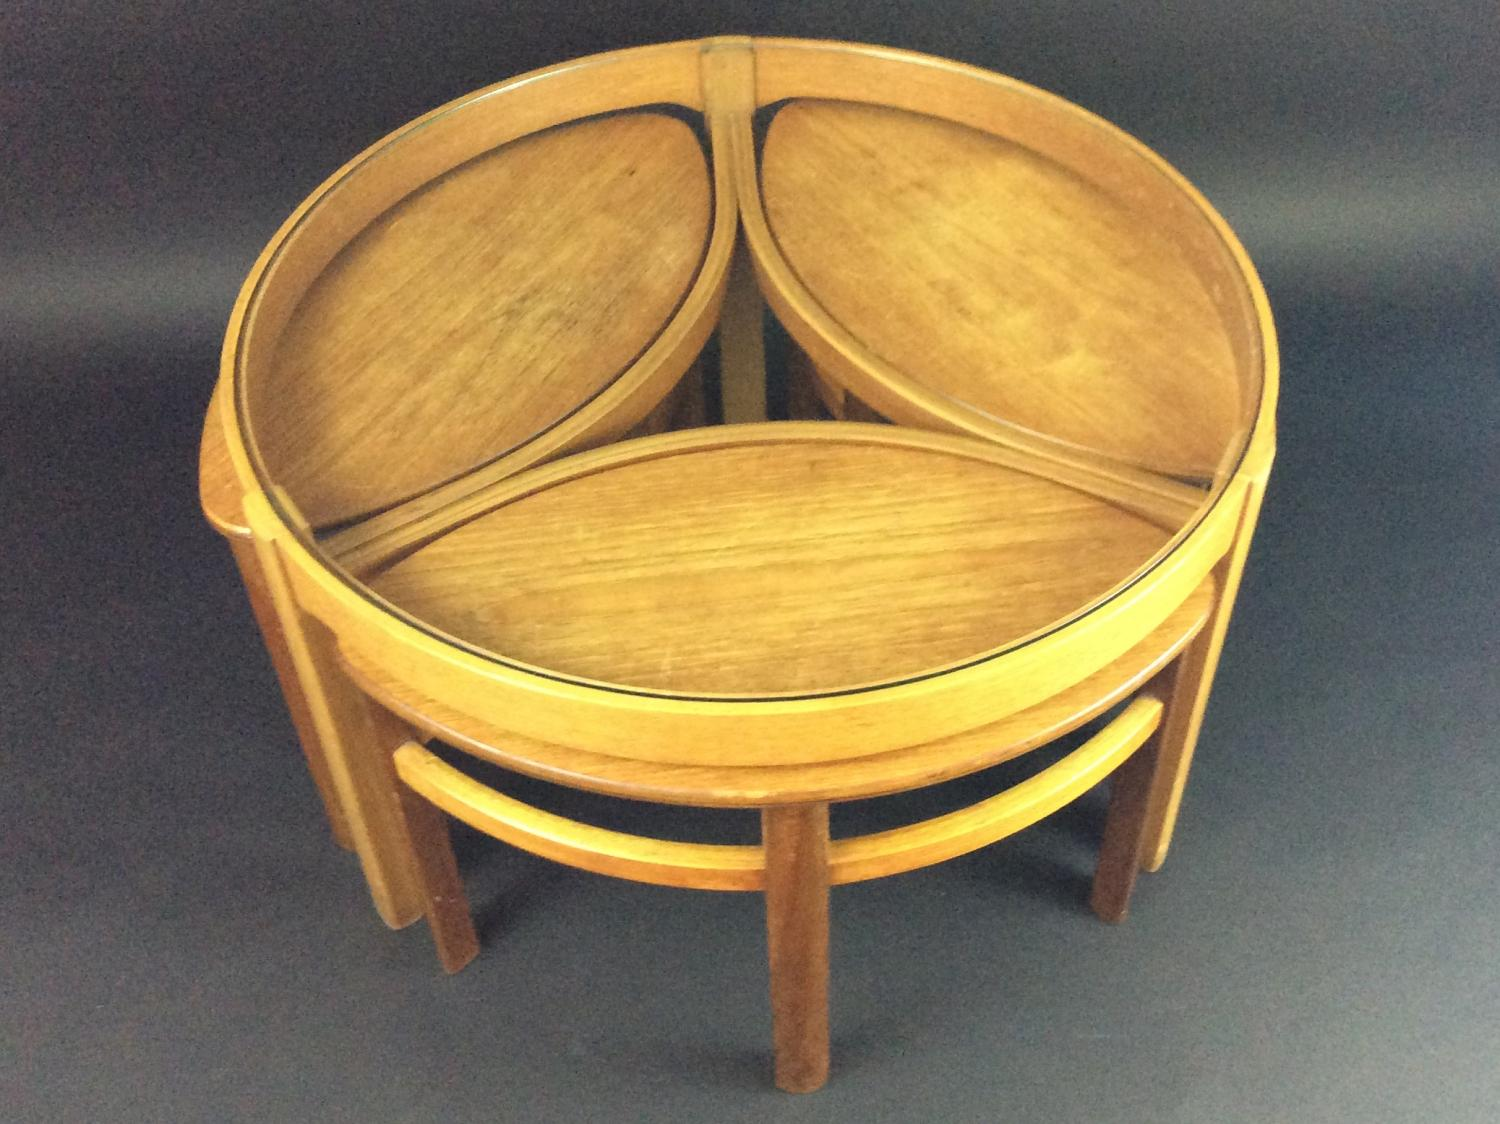 Nathan Retro Teak Coffee table and Nest in SOLD RECENTLY